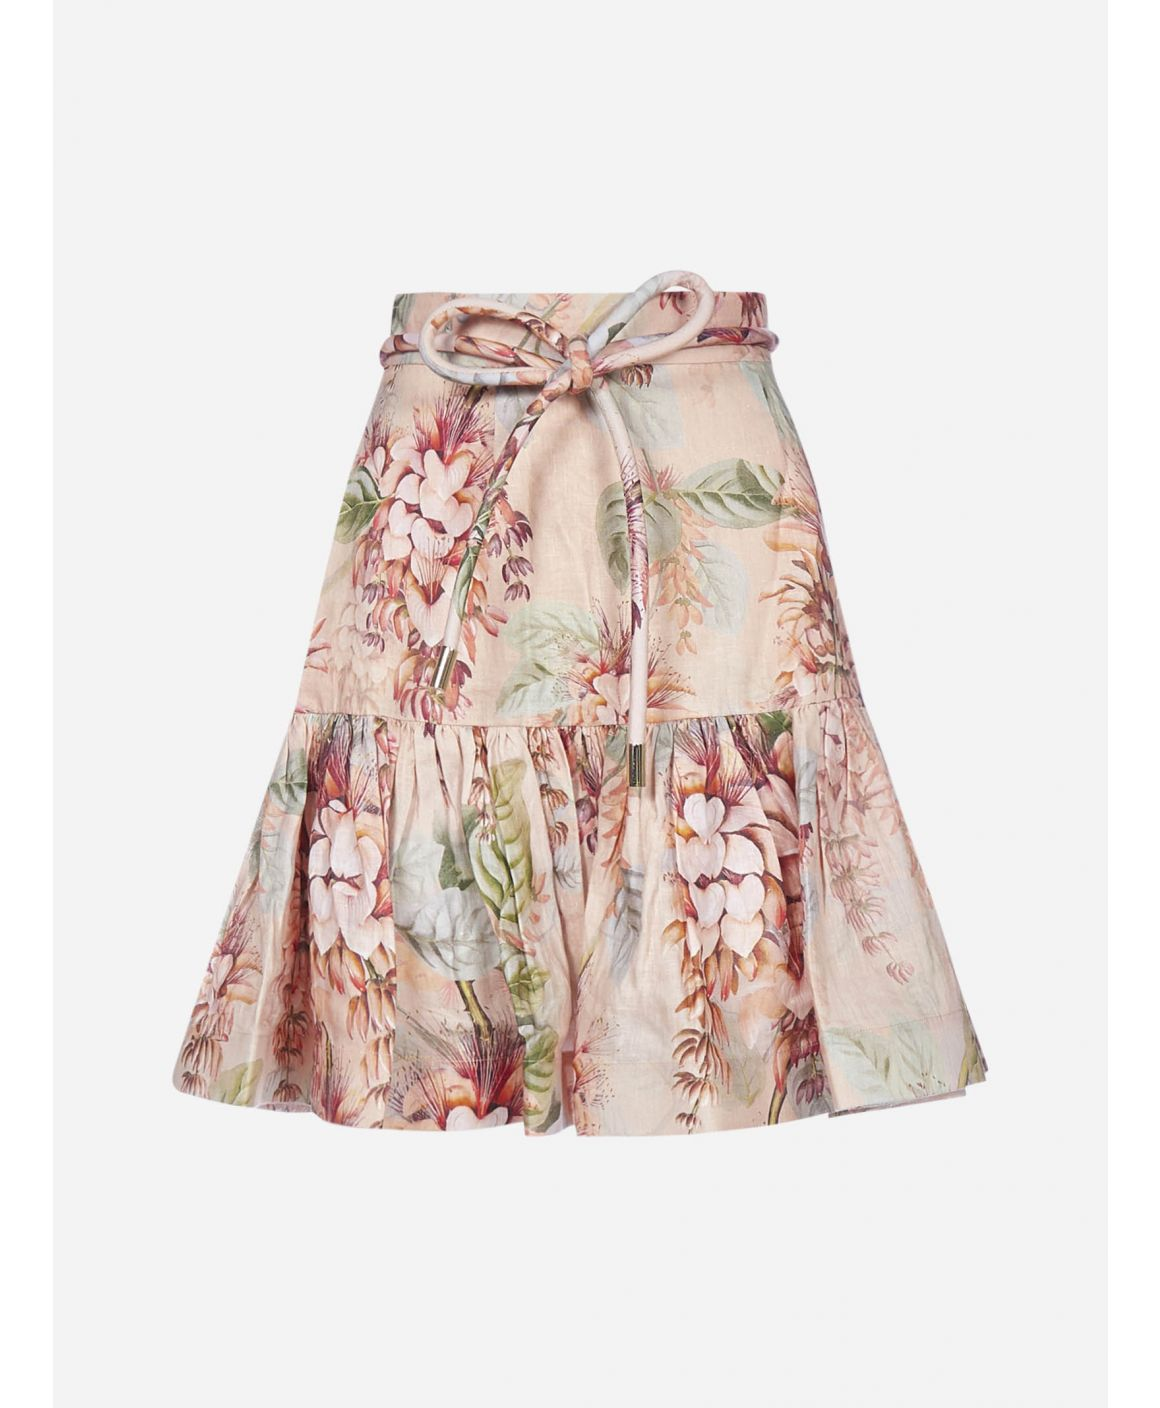 Candescent floral print linen mini skirt